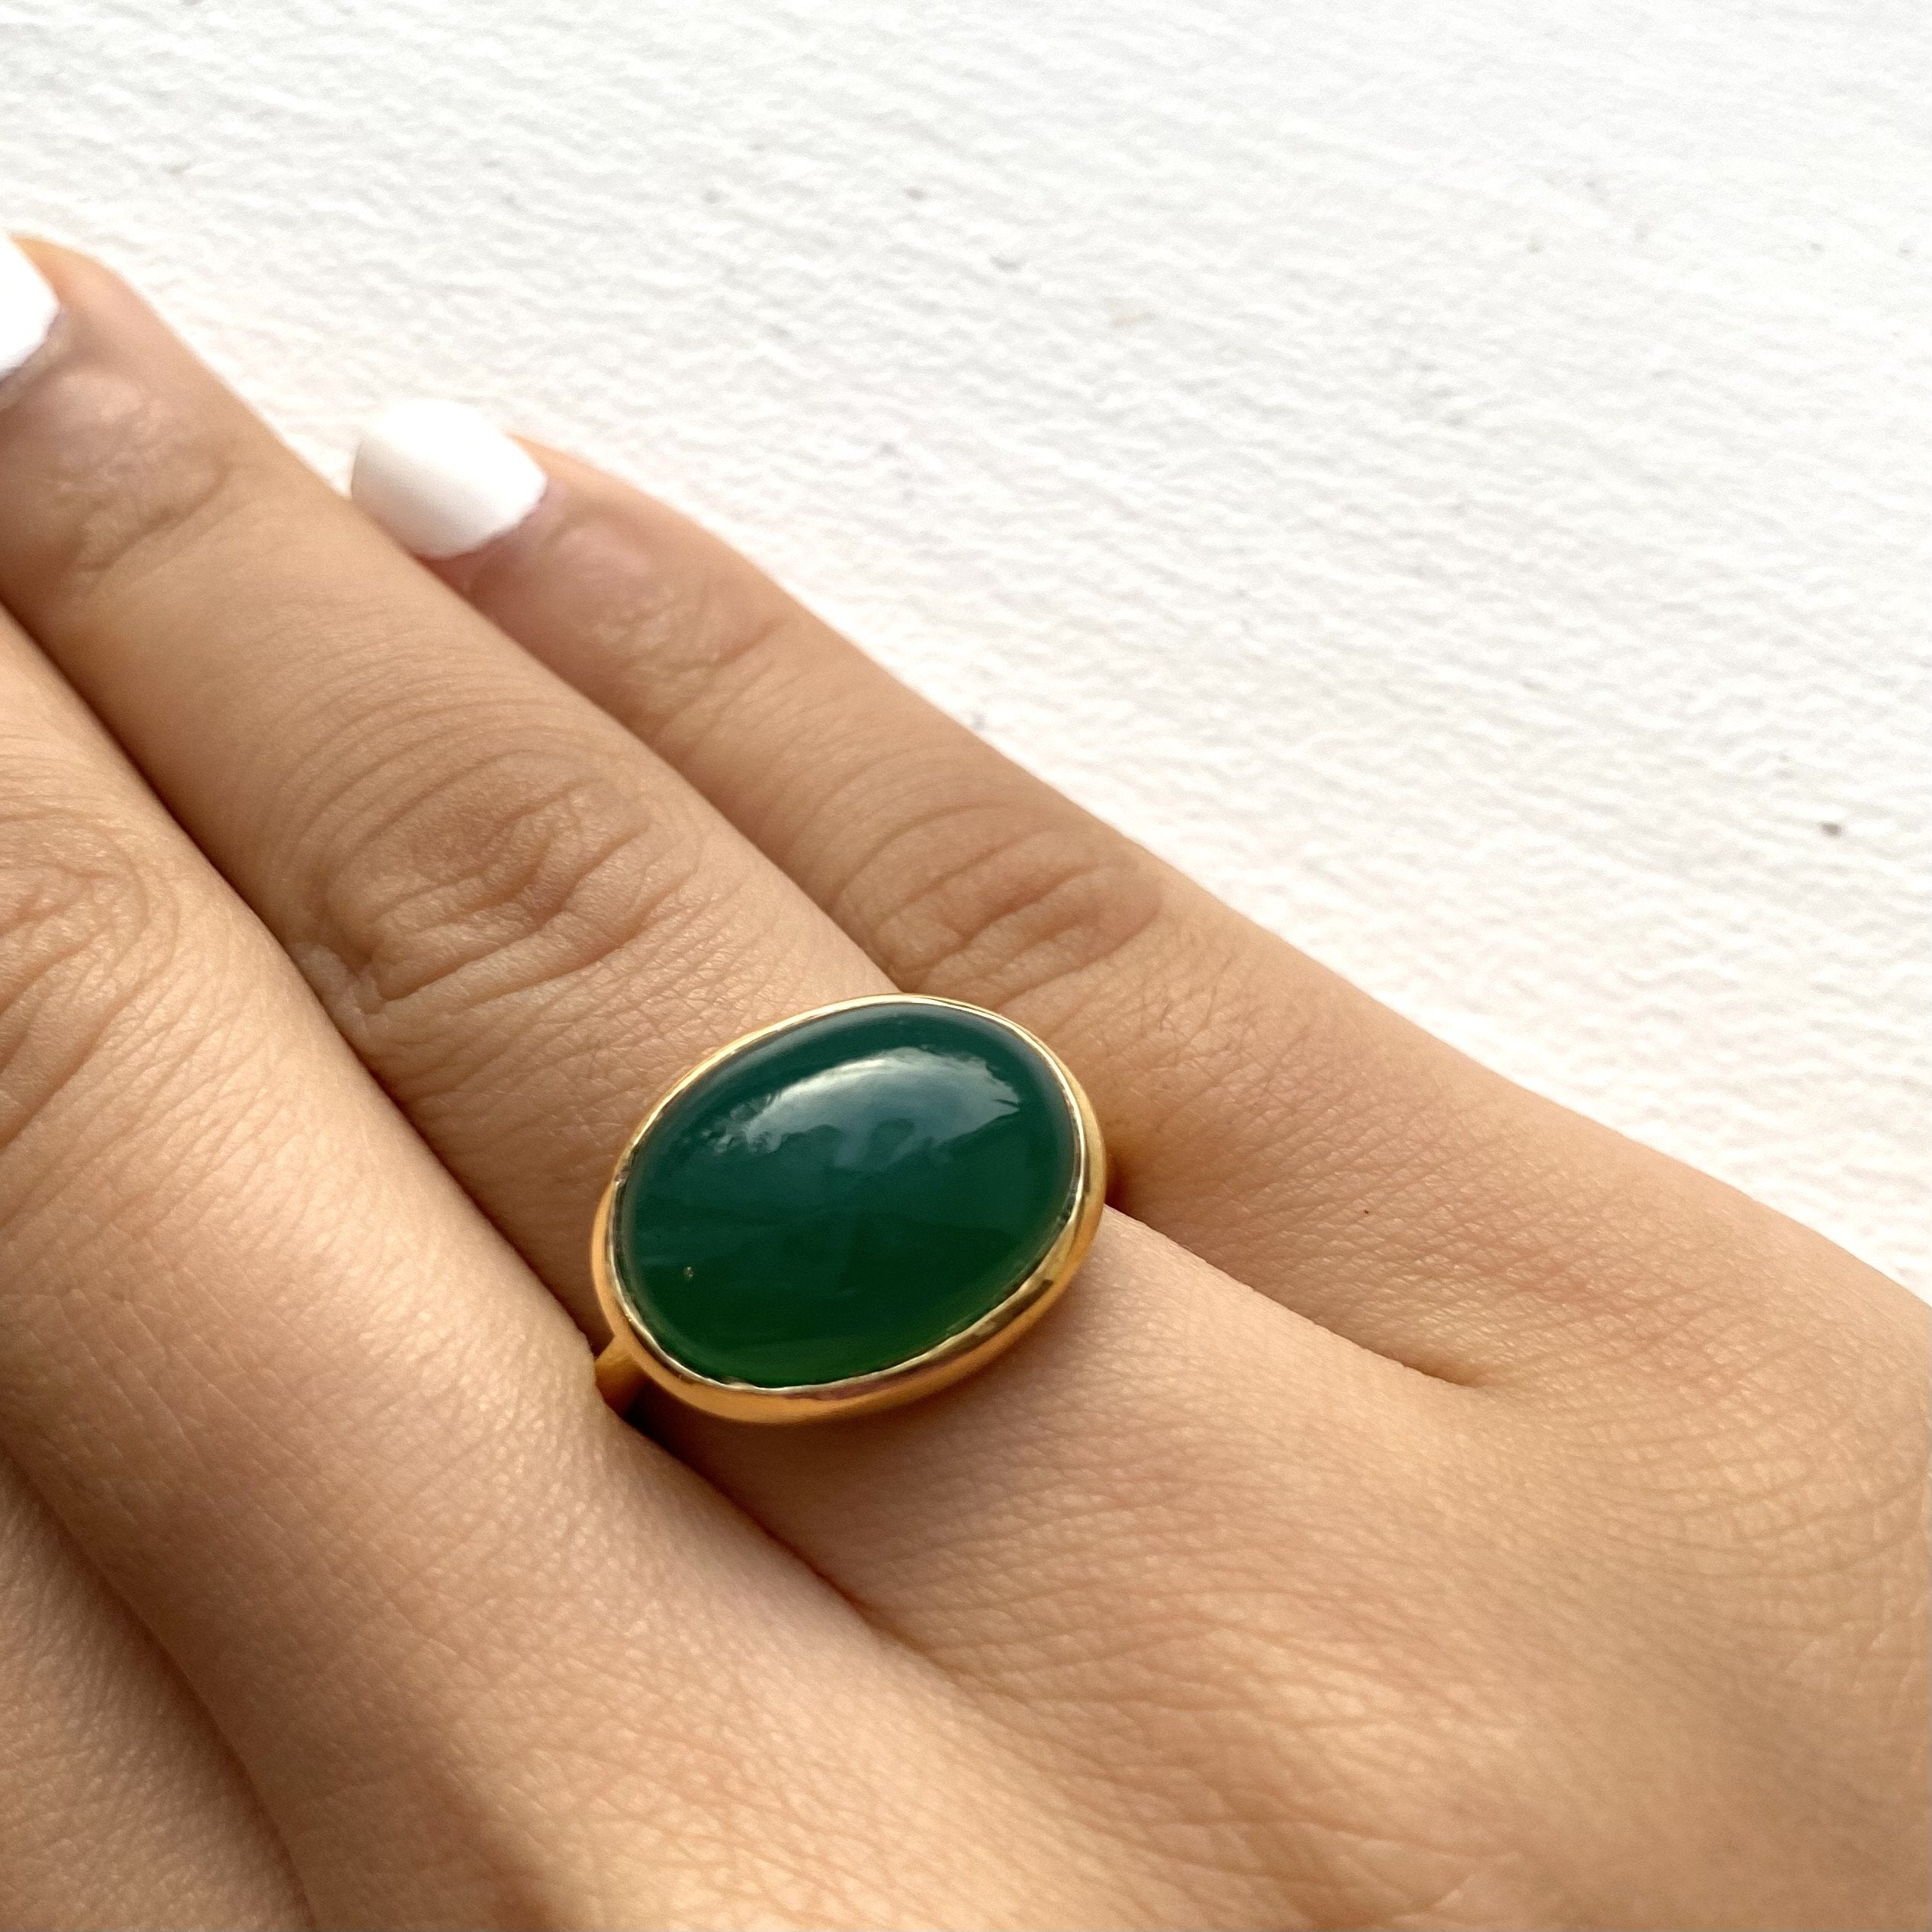 Cabochon Oval Cut Natural Gemstone Gold Plated Sterling Silver Ring - Green Onyx